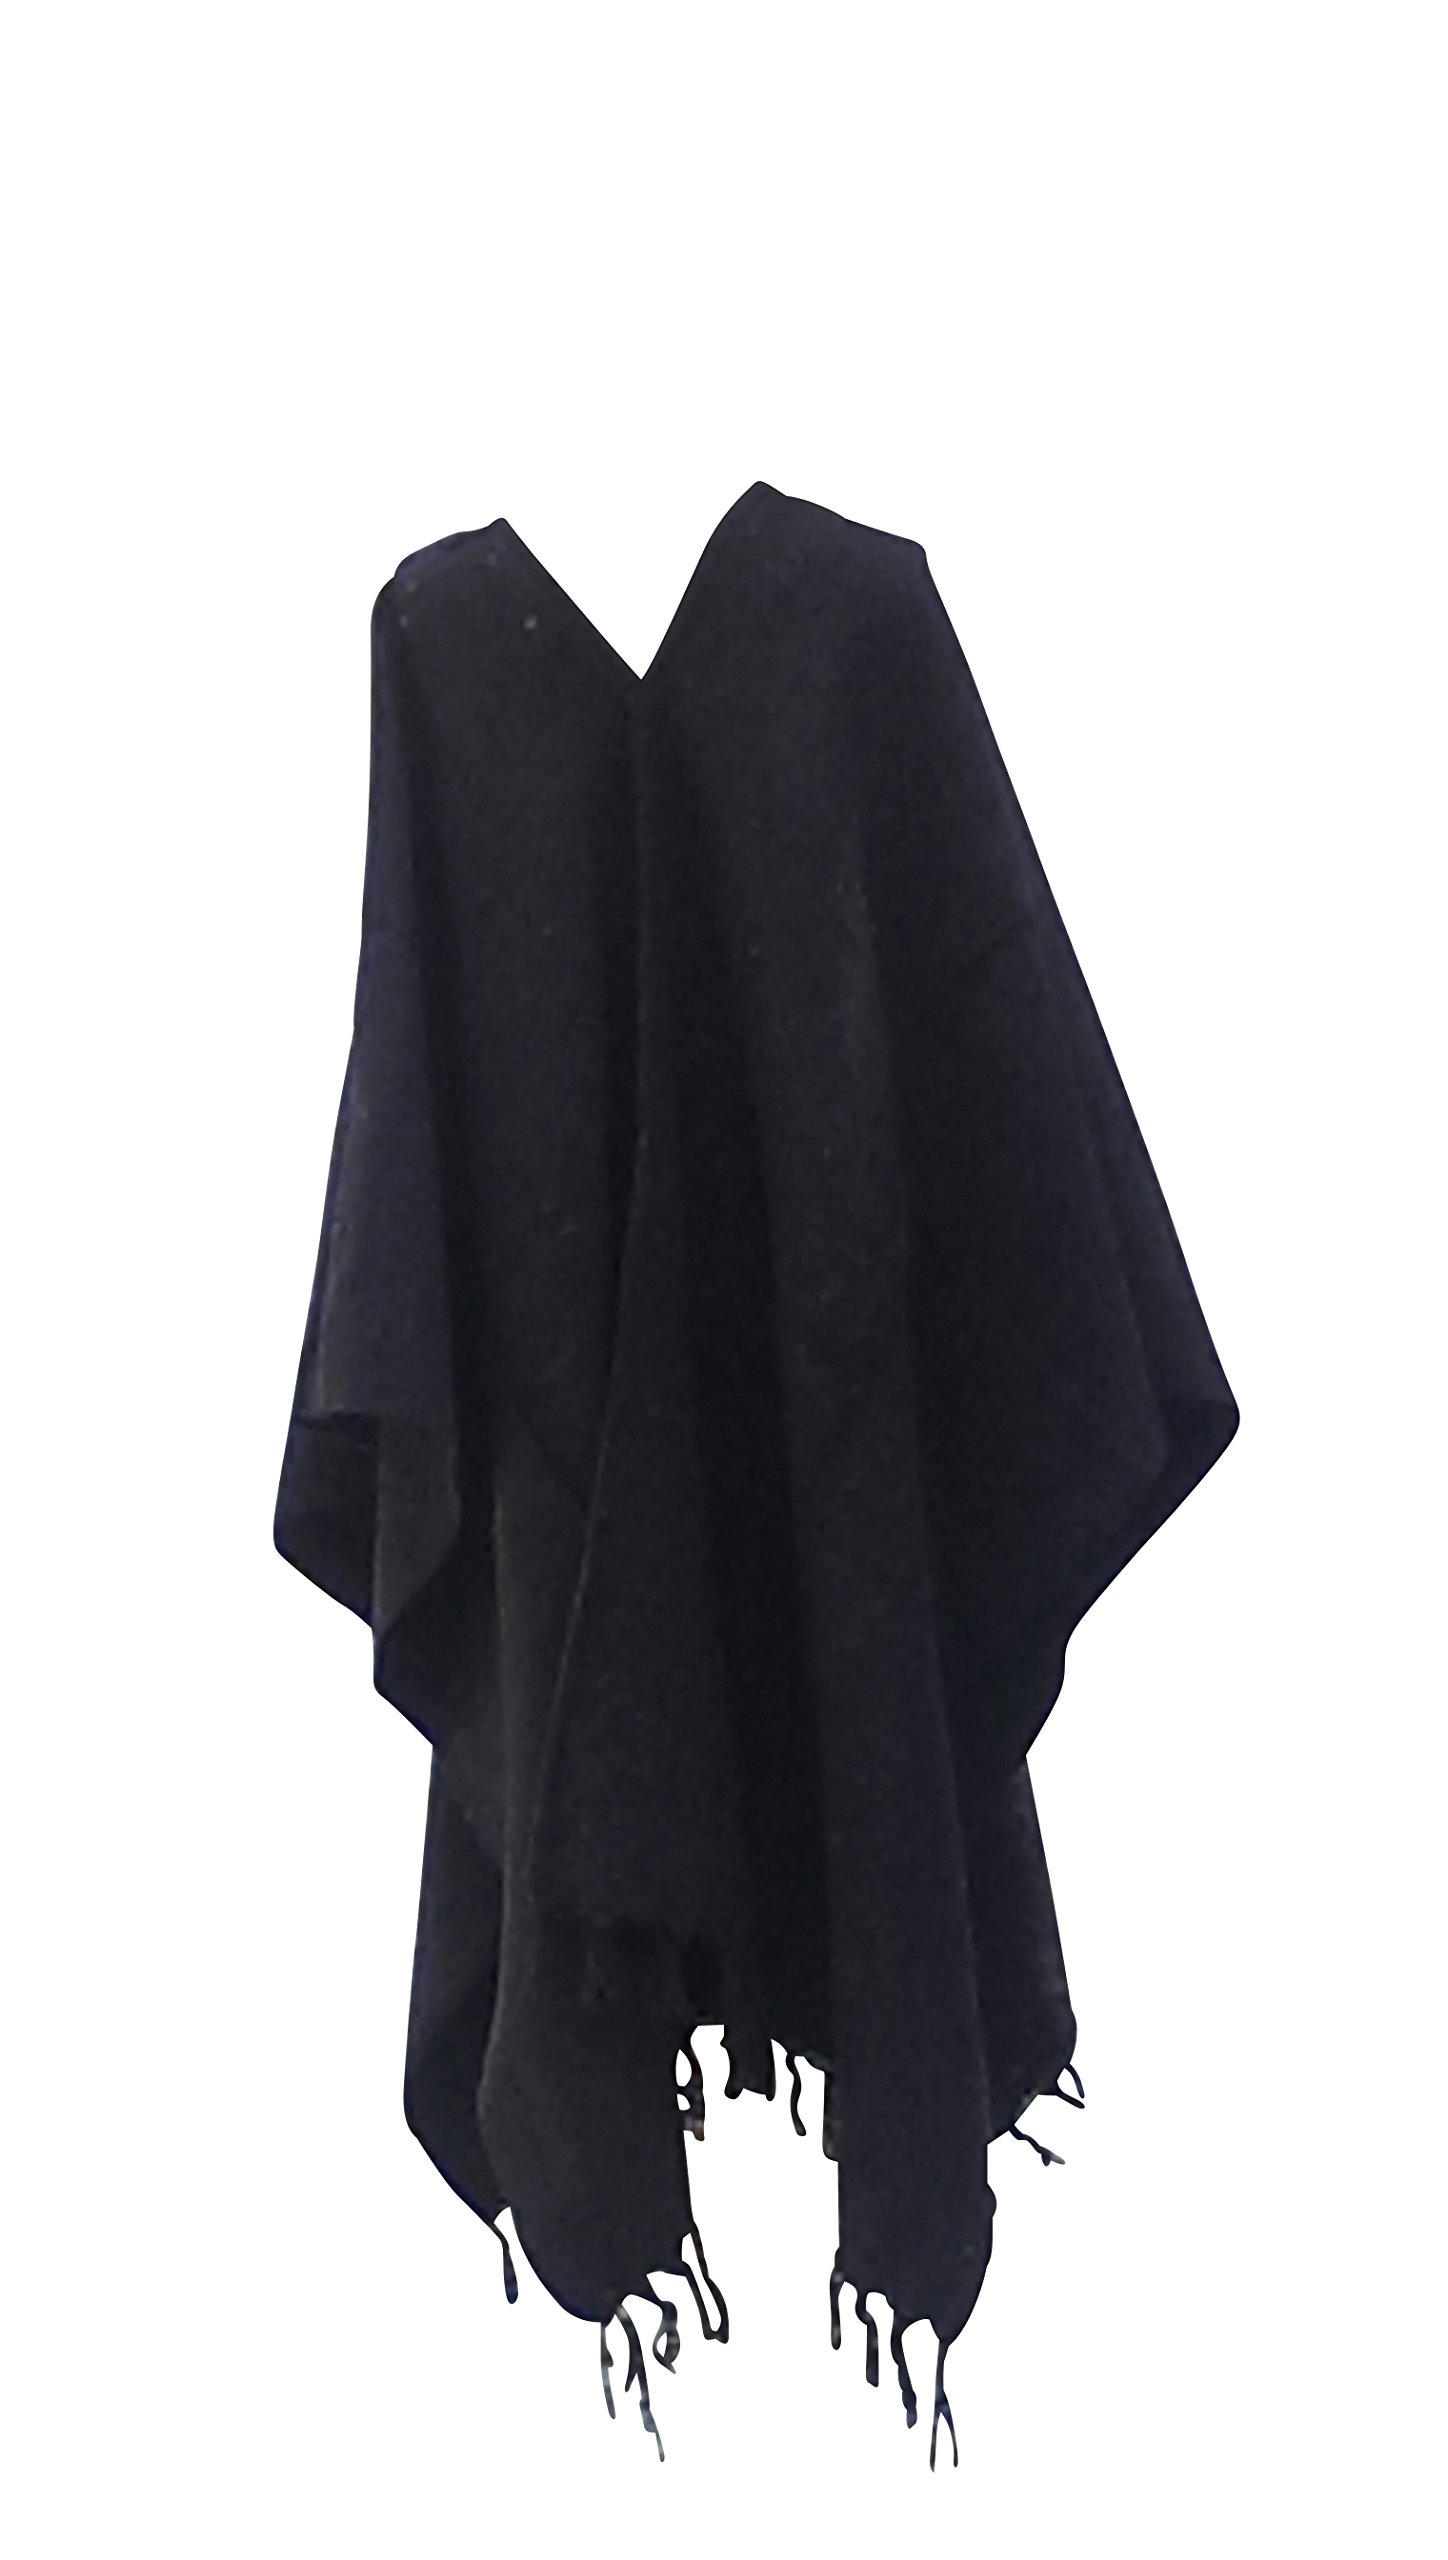 Sharpshooter Clint Eastwood Style Texmex Spaghetti Western Designer Party Black Poncho